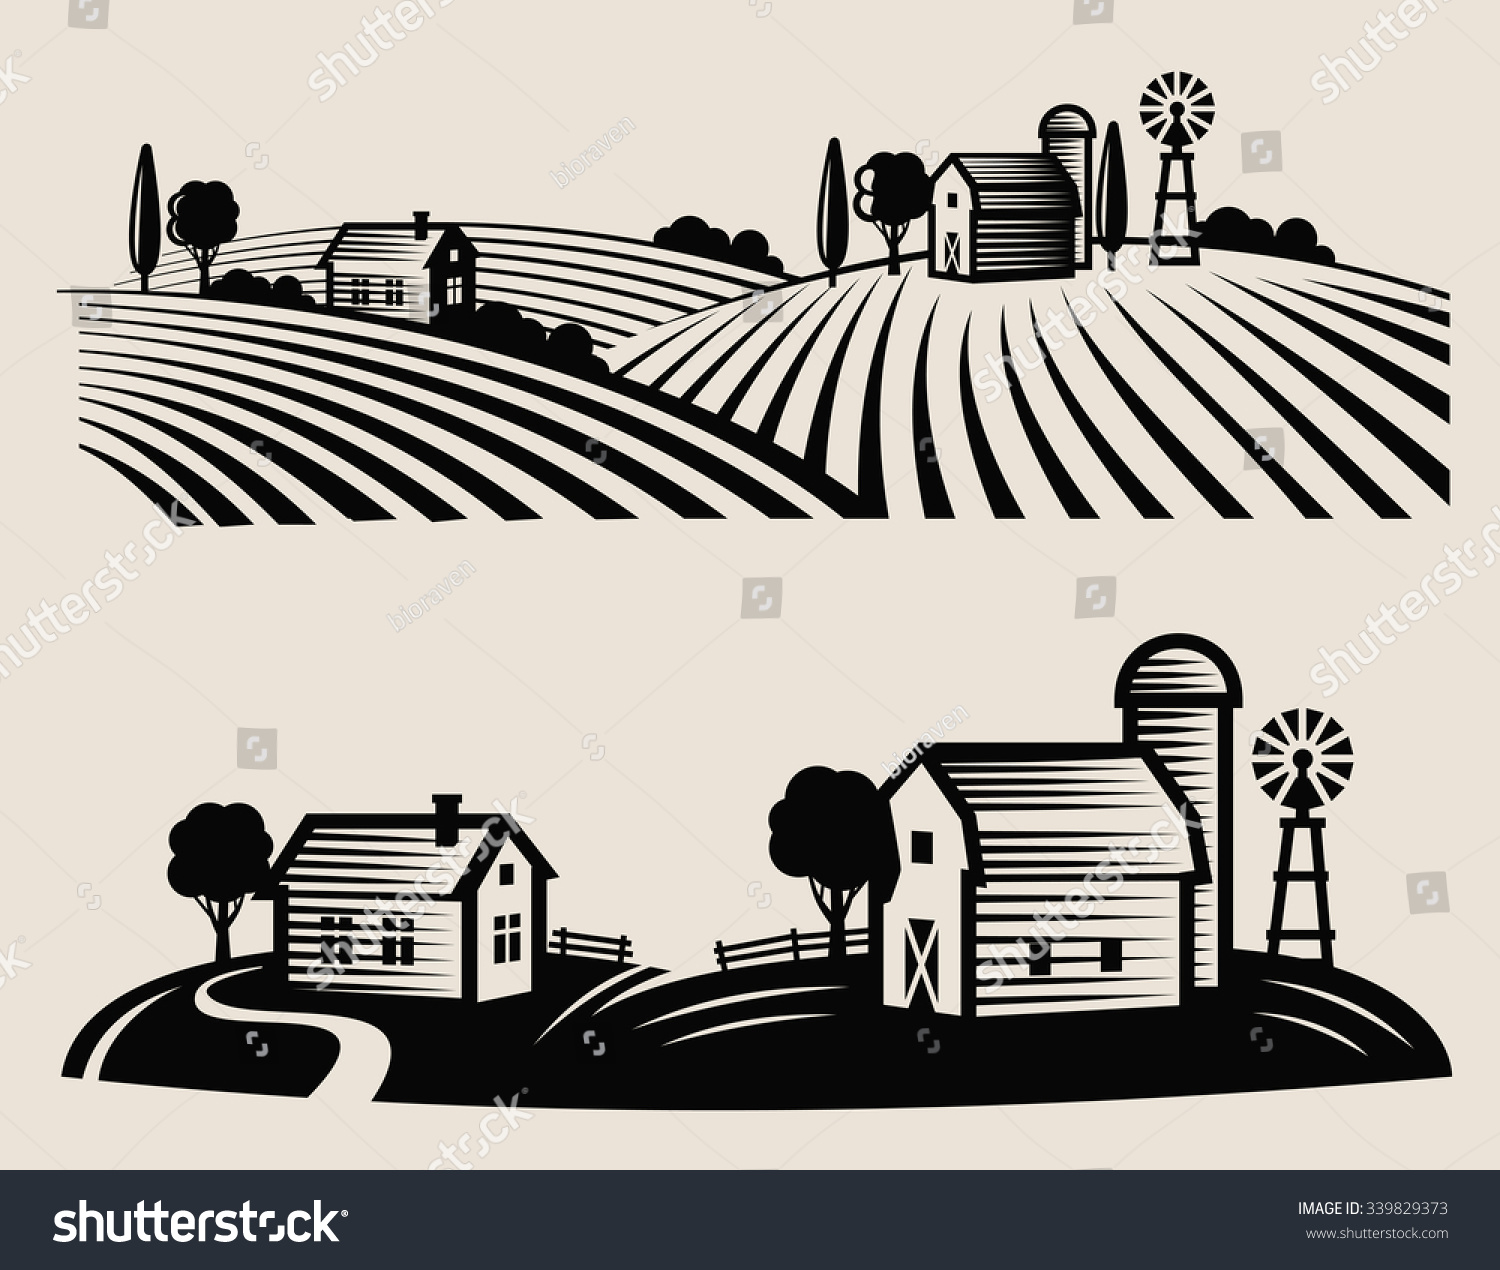 Farm Vector Black And White at GetDrawings | Free download